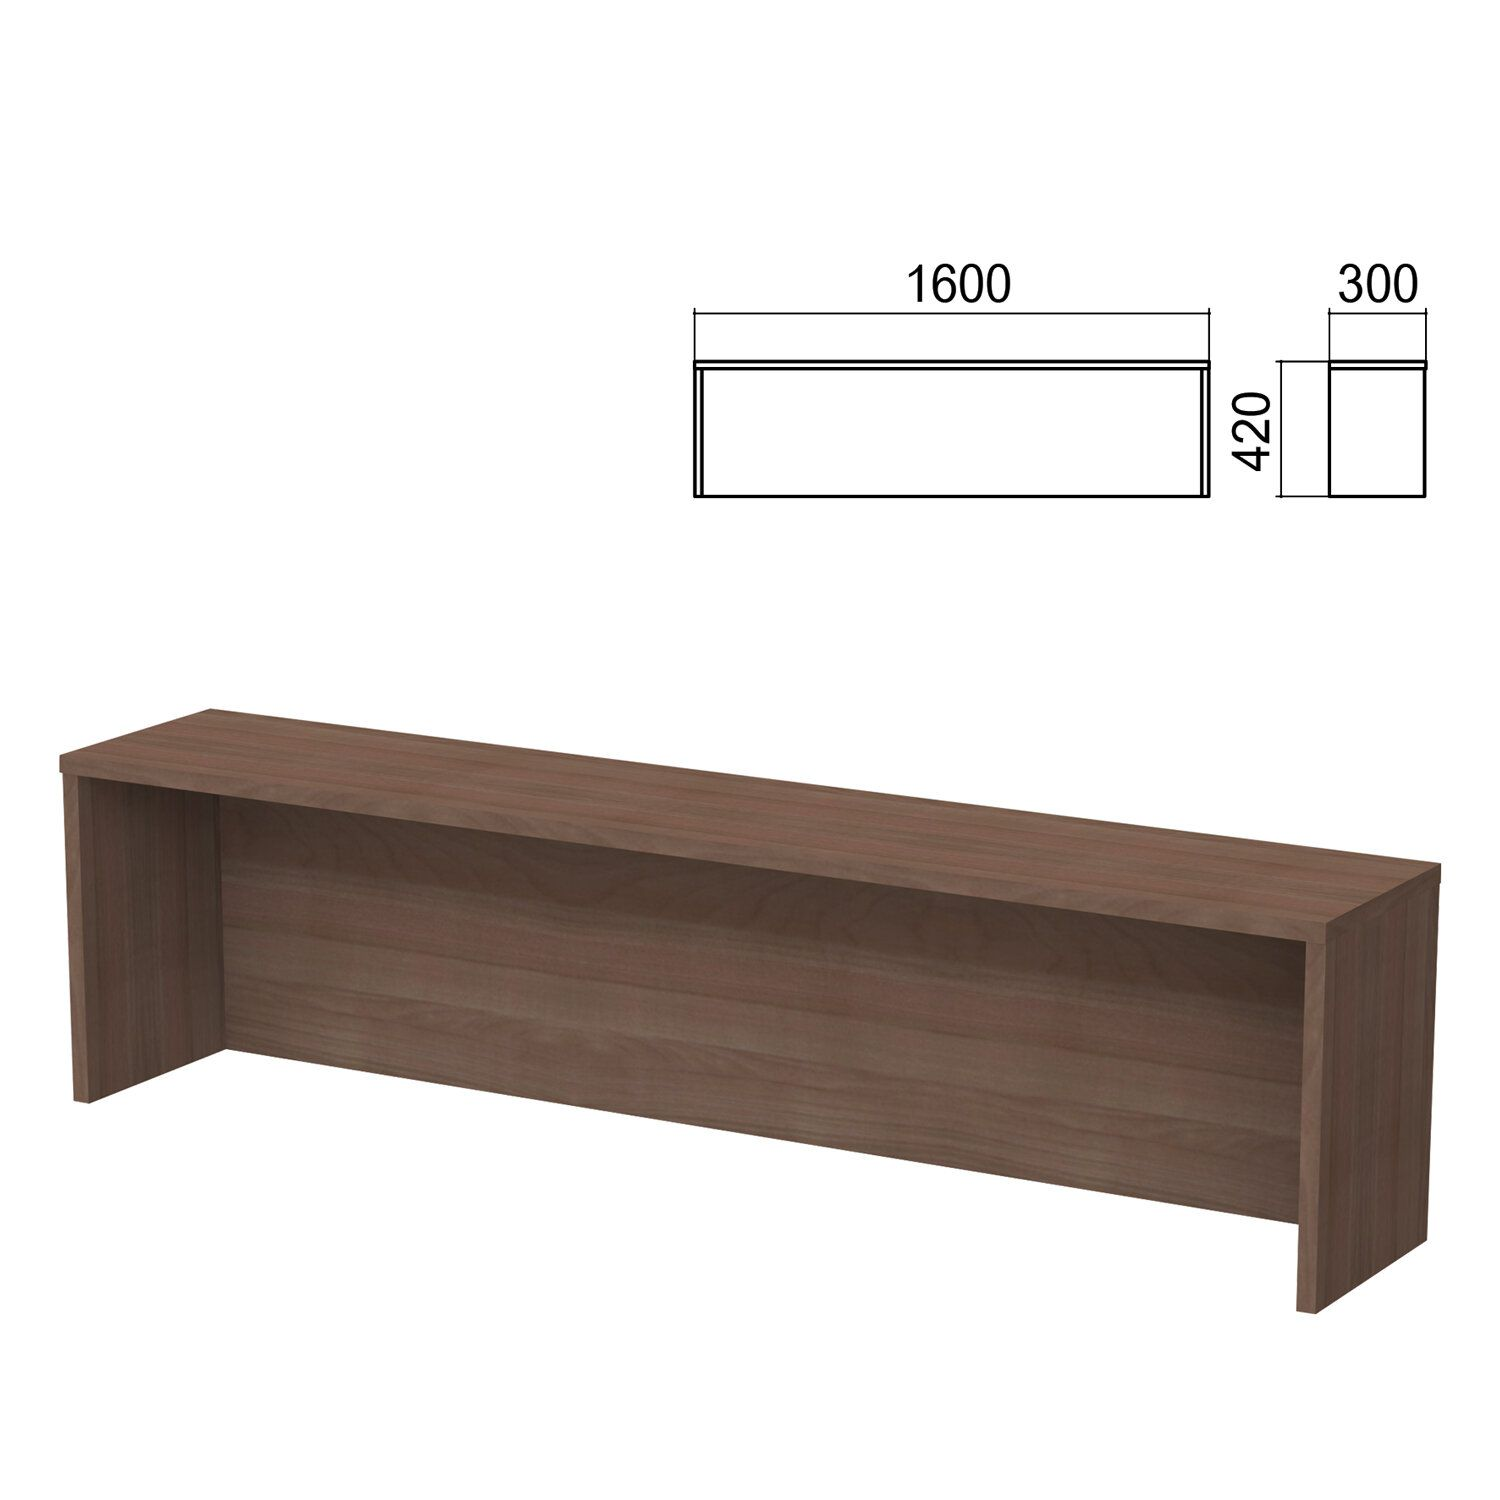 Argo table add-on, 1600 mm wide, garbo